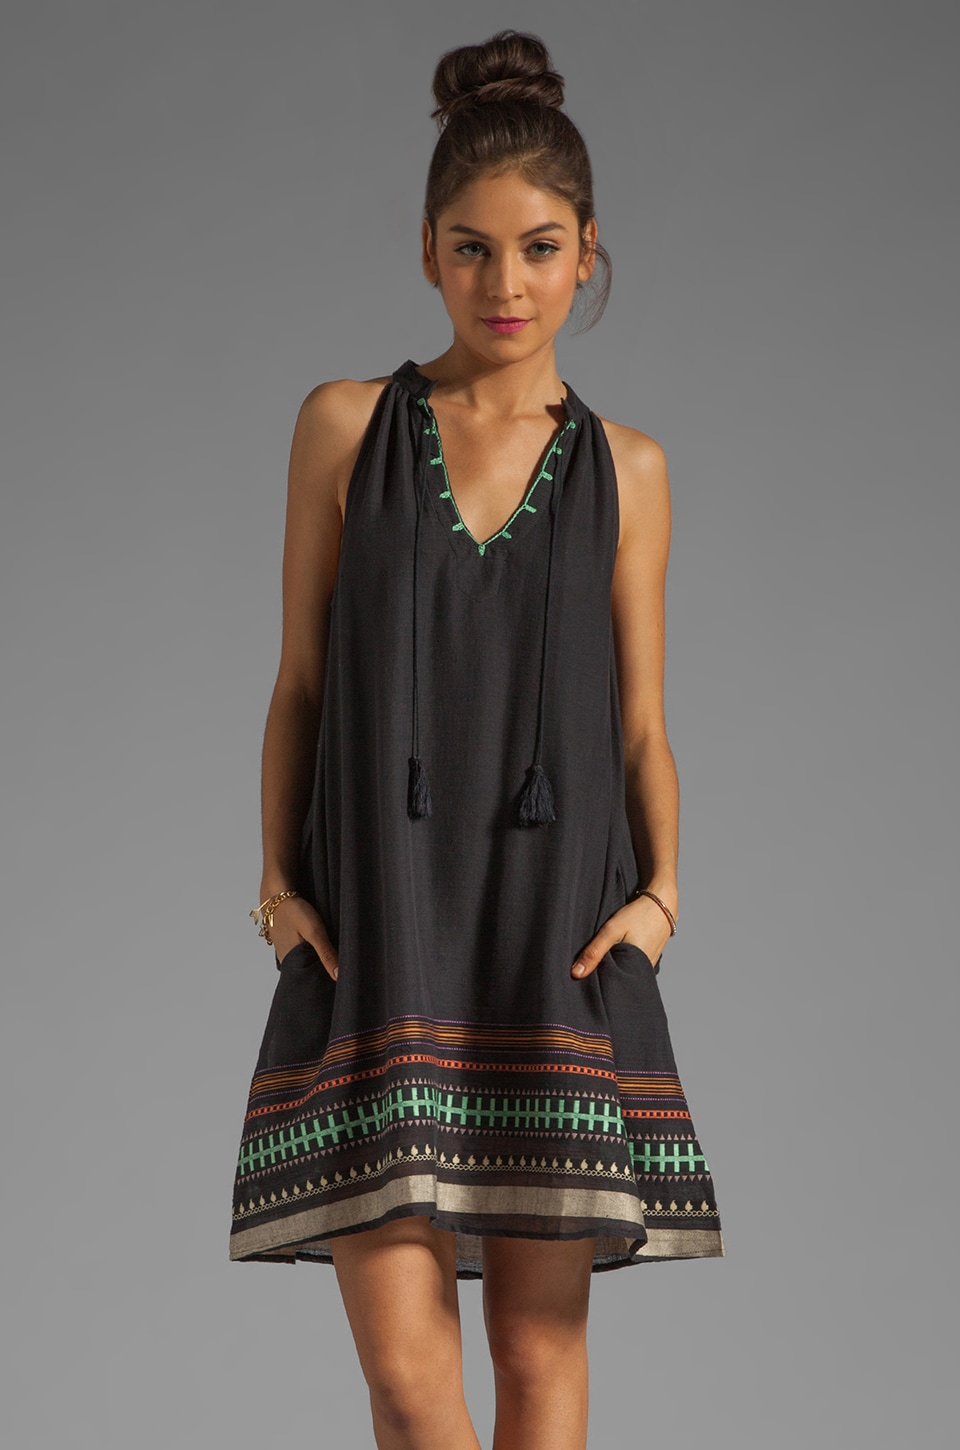 Gypsy 05 Goa Global Village High Neck Tunic in Black